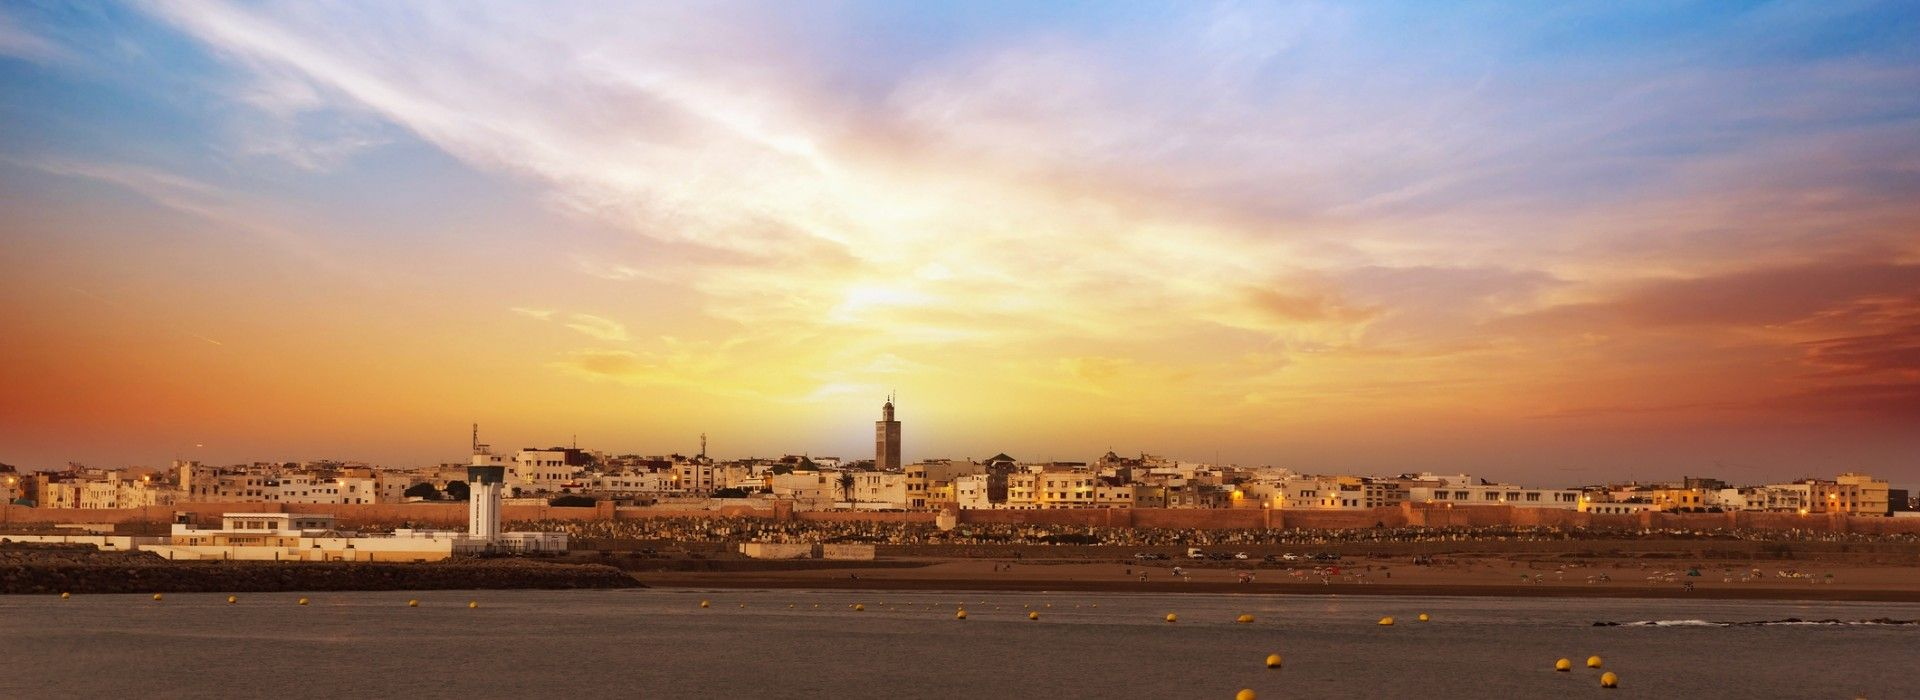 Sightseeing, attractions, culture and history Tours in Casablanca